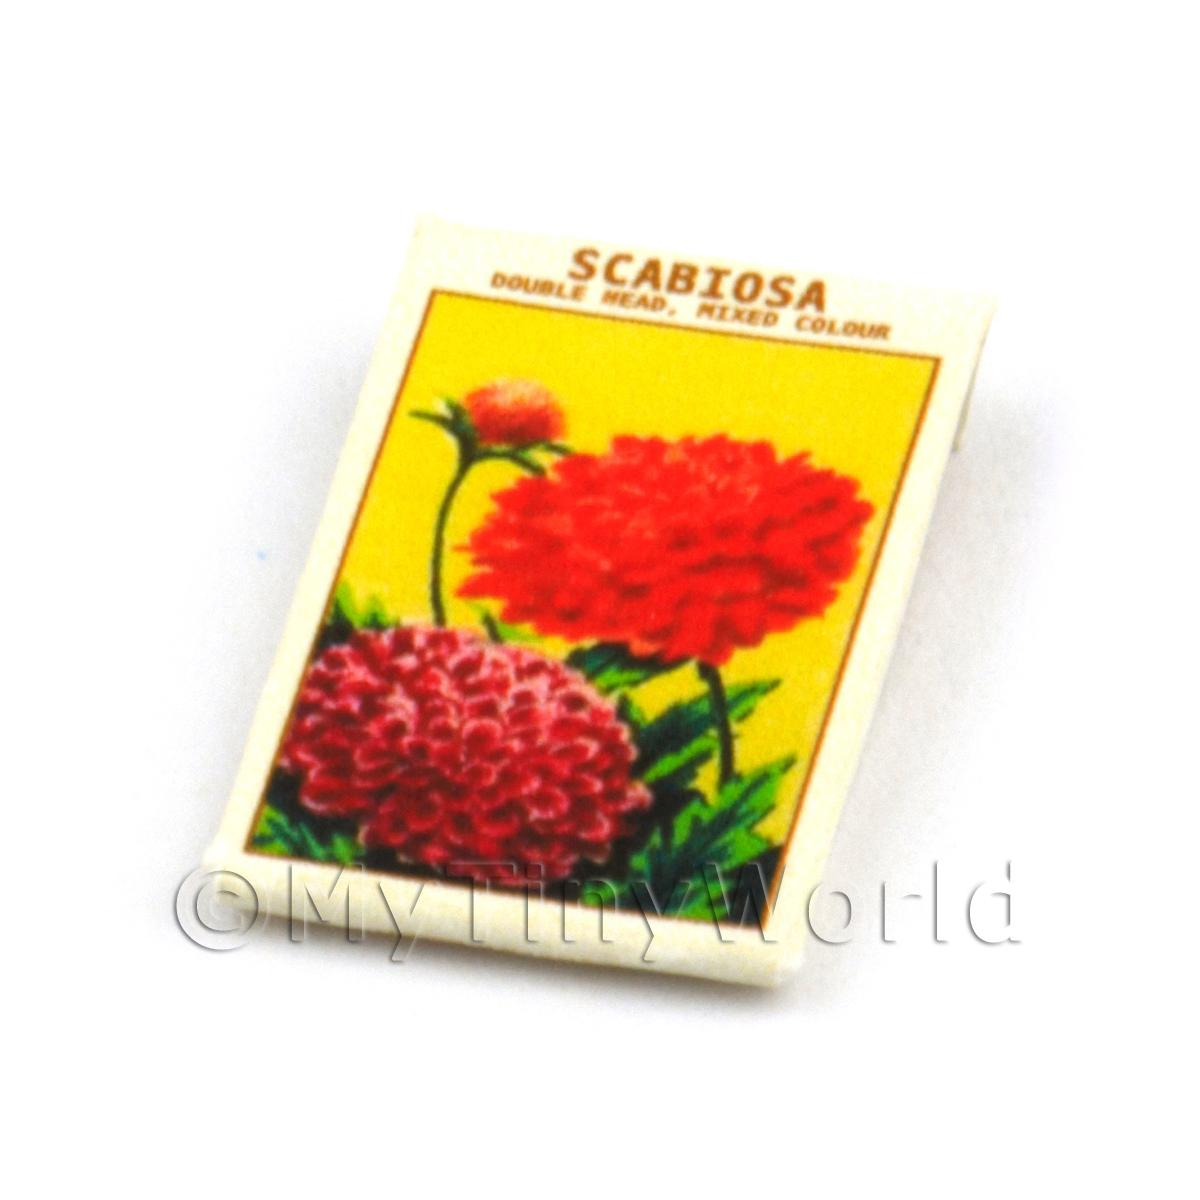 Dolls House Flower Seed Packet - Scabiosa